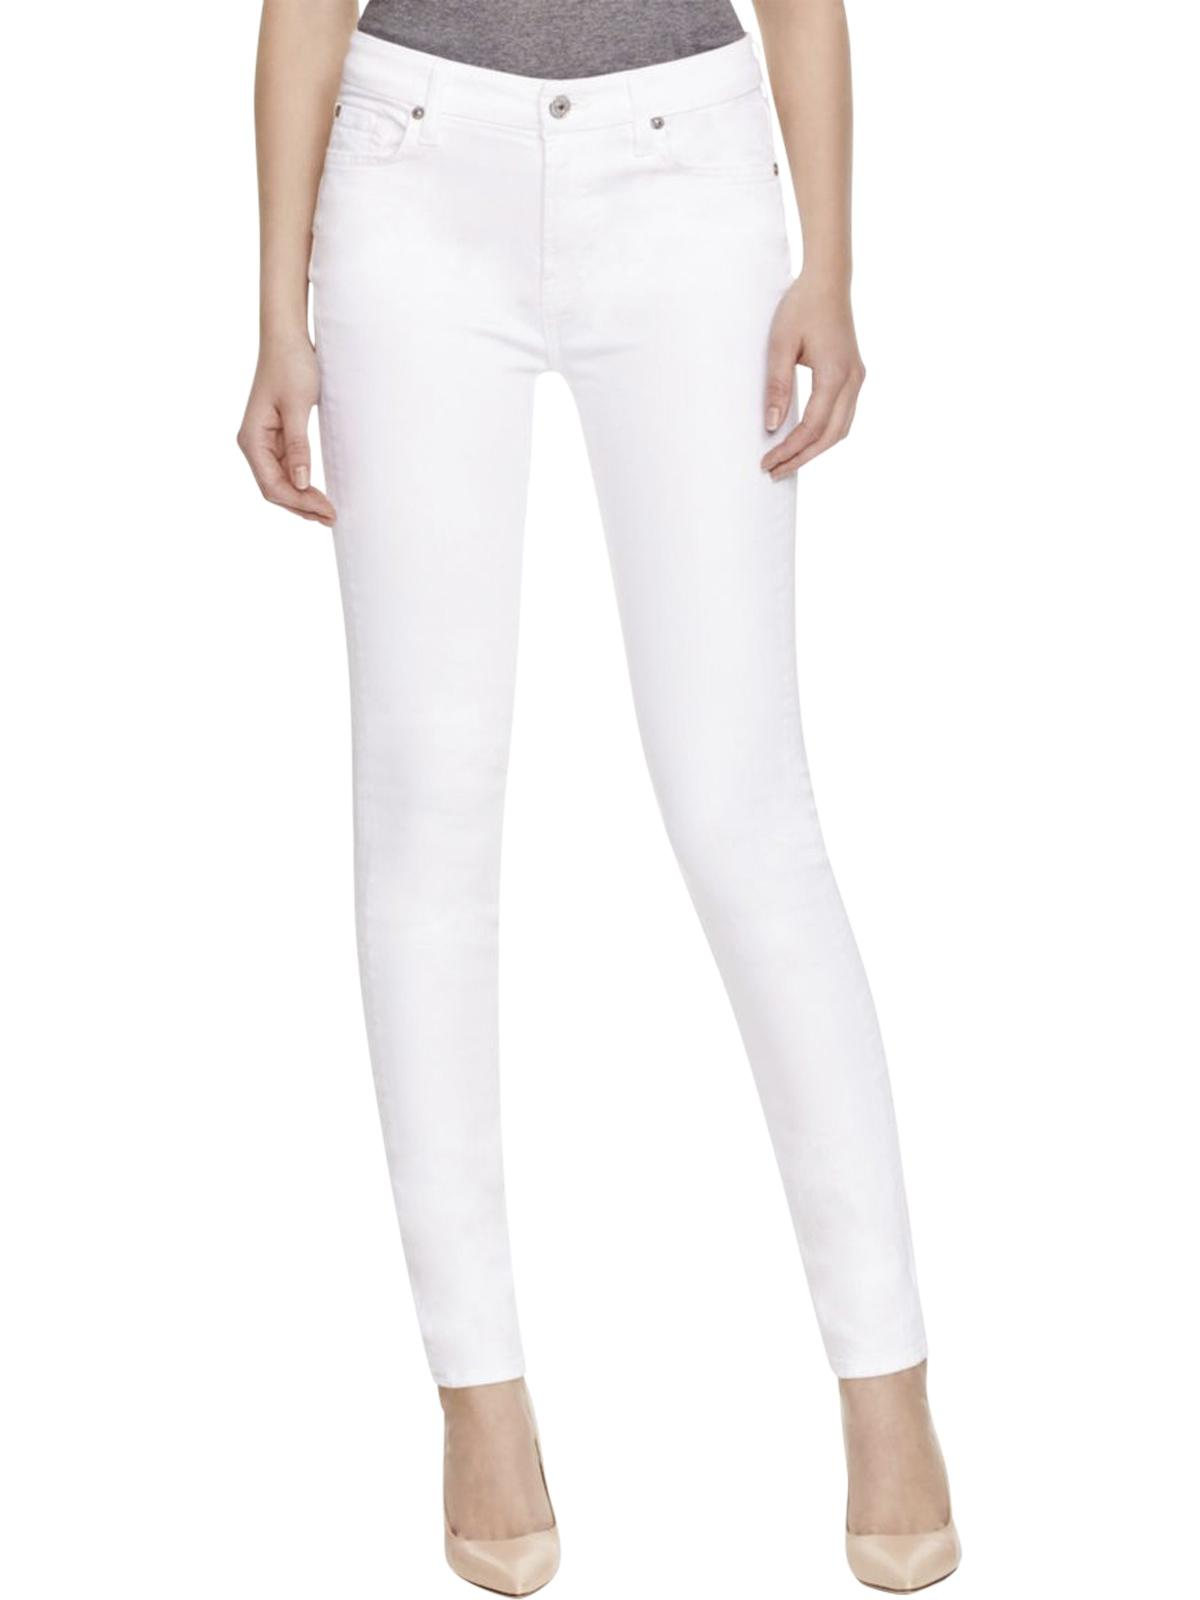 7 For All Mankind Womens Denim Low-Rise Skinny Jeans